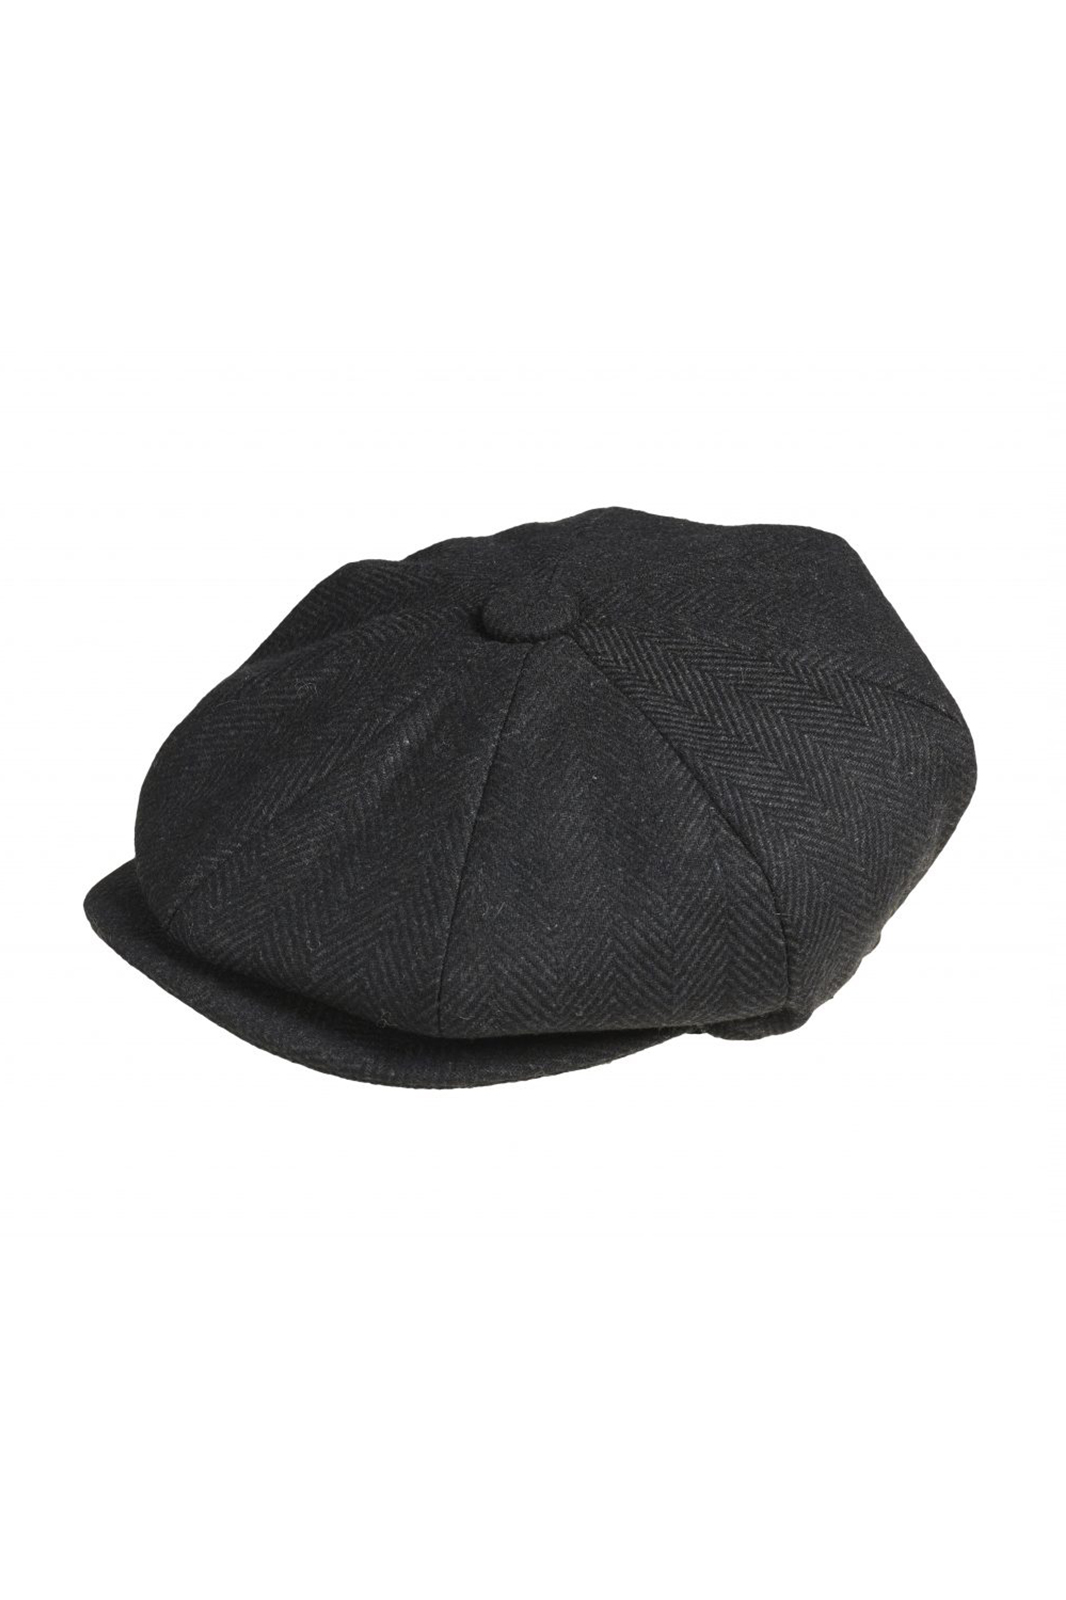 Wool Newsboy Cap Herringbone Black